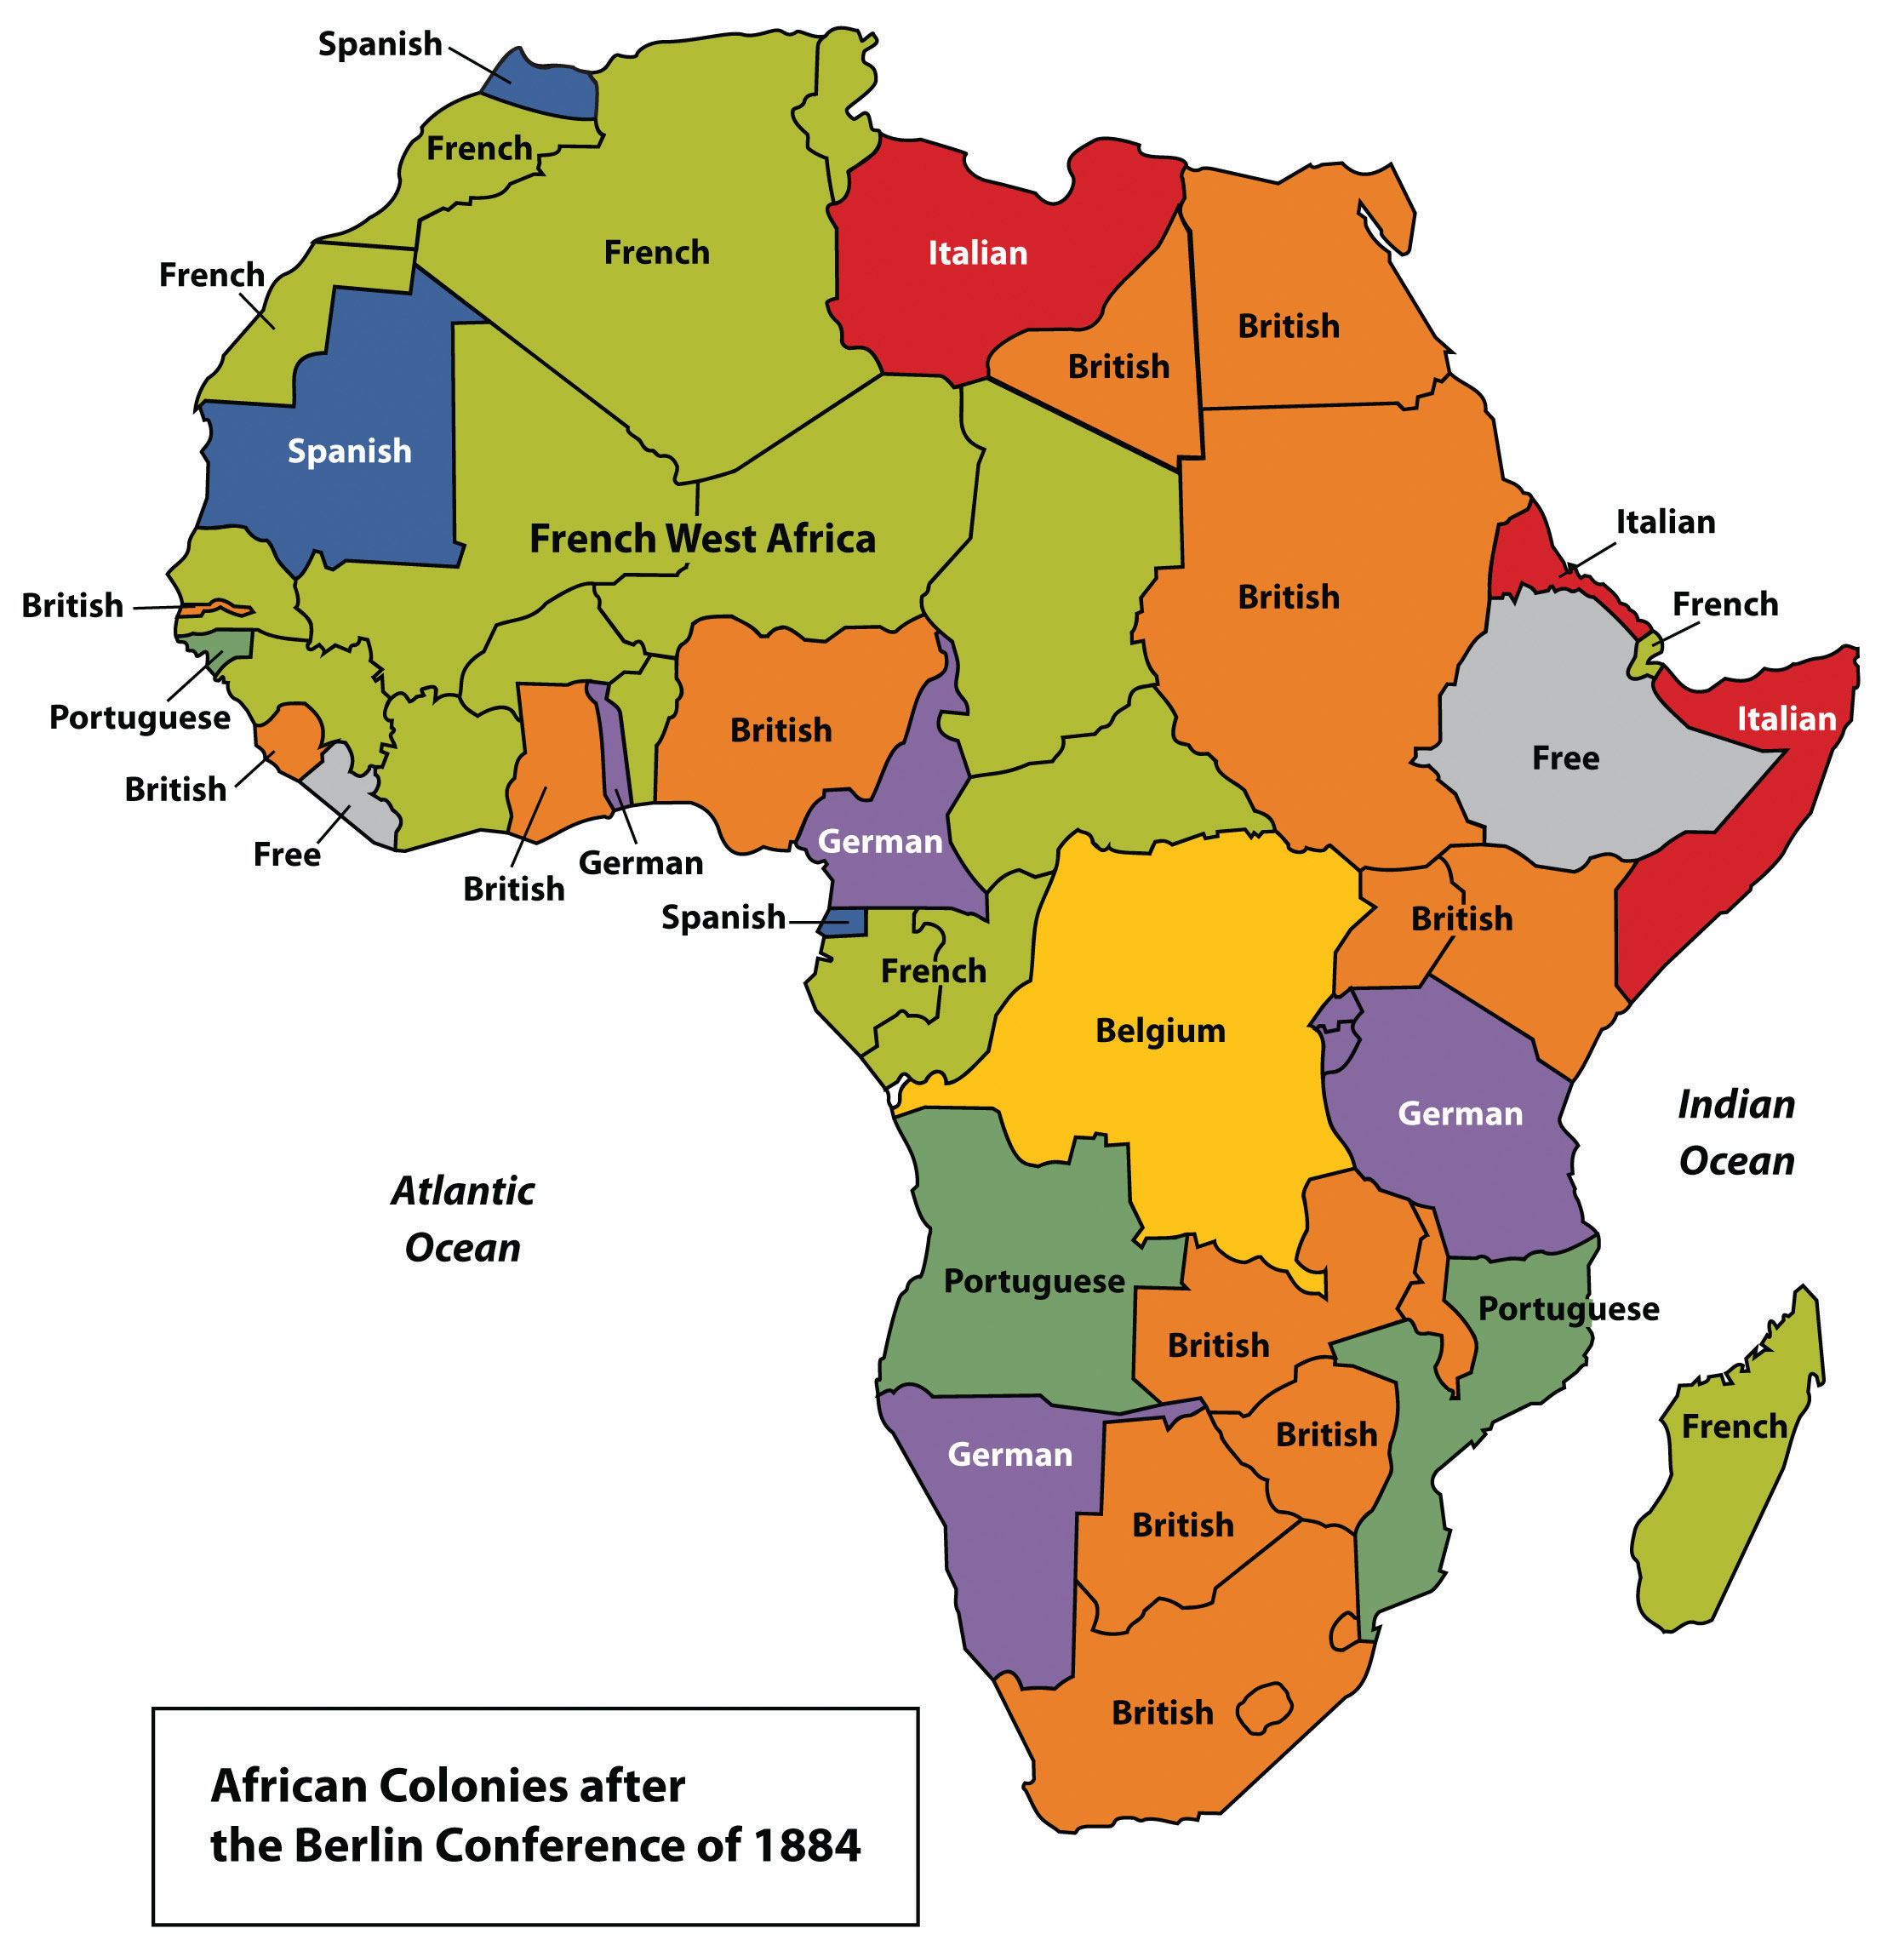 a look at examples of colonization in africa The term imperialism often describes cases in which a foreign government administers a territory without significant settlement typical examples include the scramble for africa in the late nineteenth century and the american domination of the philippines and puerto rico.